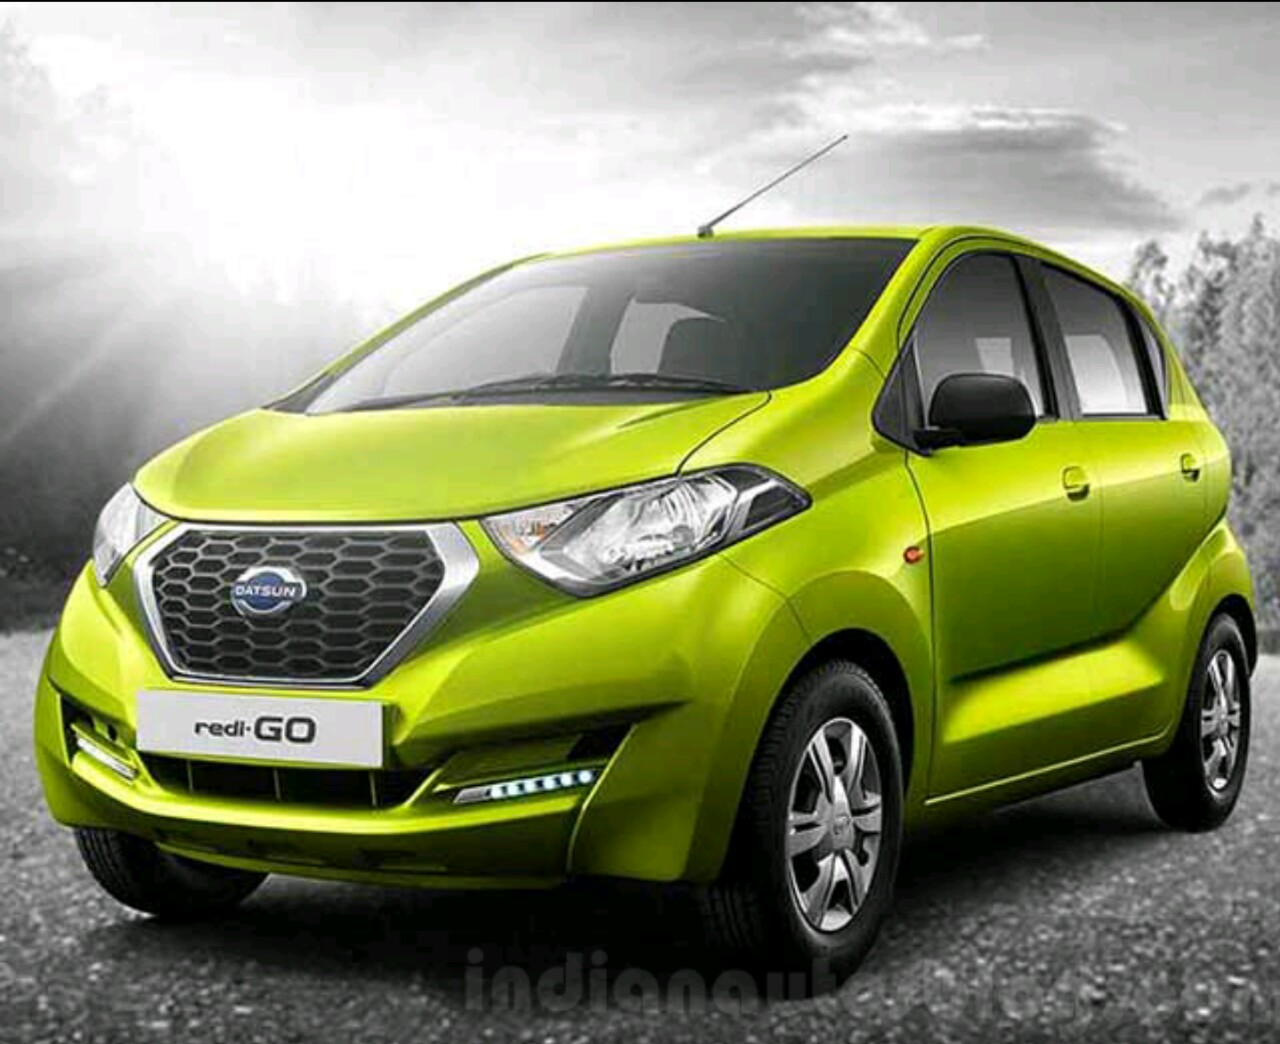 Datsun redi-GO pre-orders to open on May 1